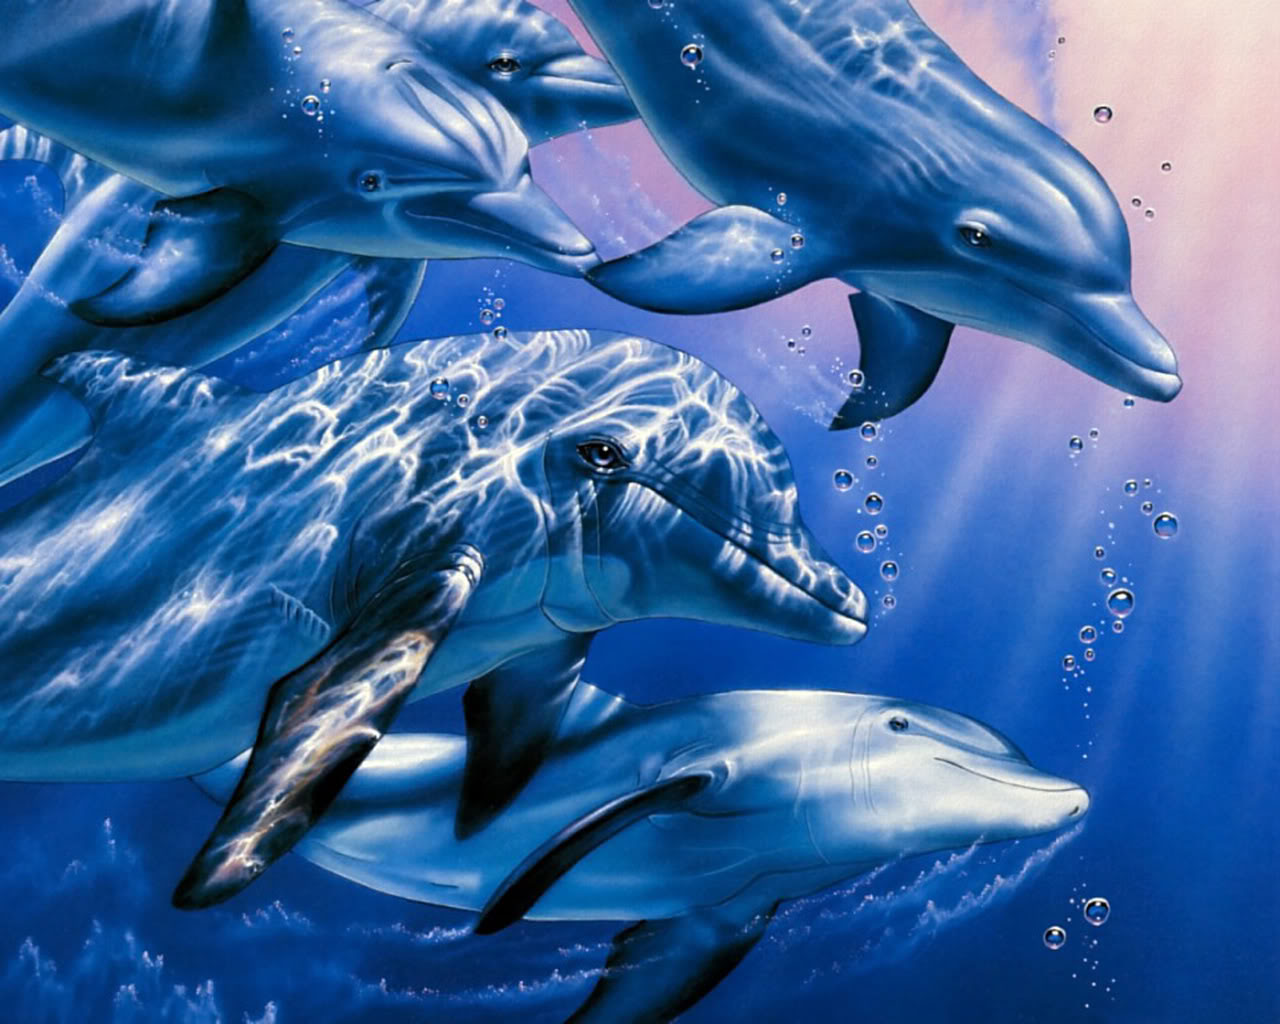 Desktop Backgrounds Dolphins Dolphins Dolphins Backgrounds 1280x1024